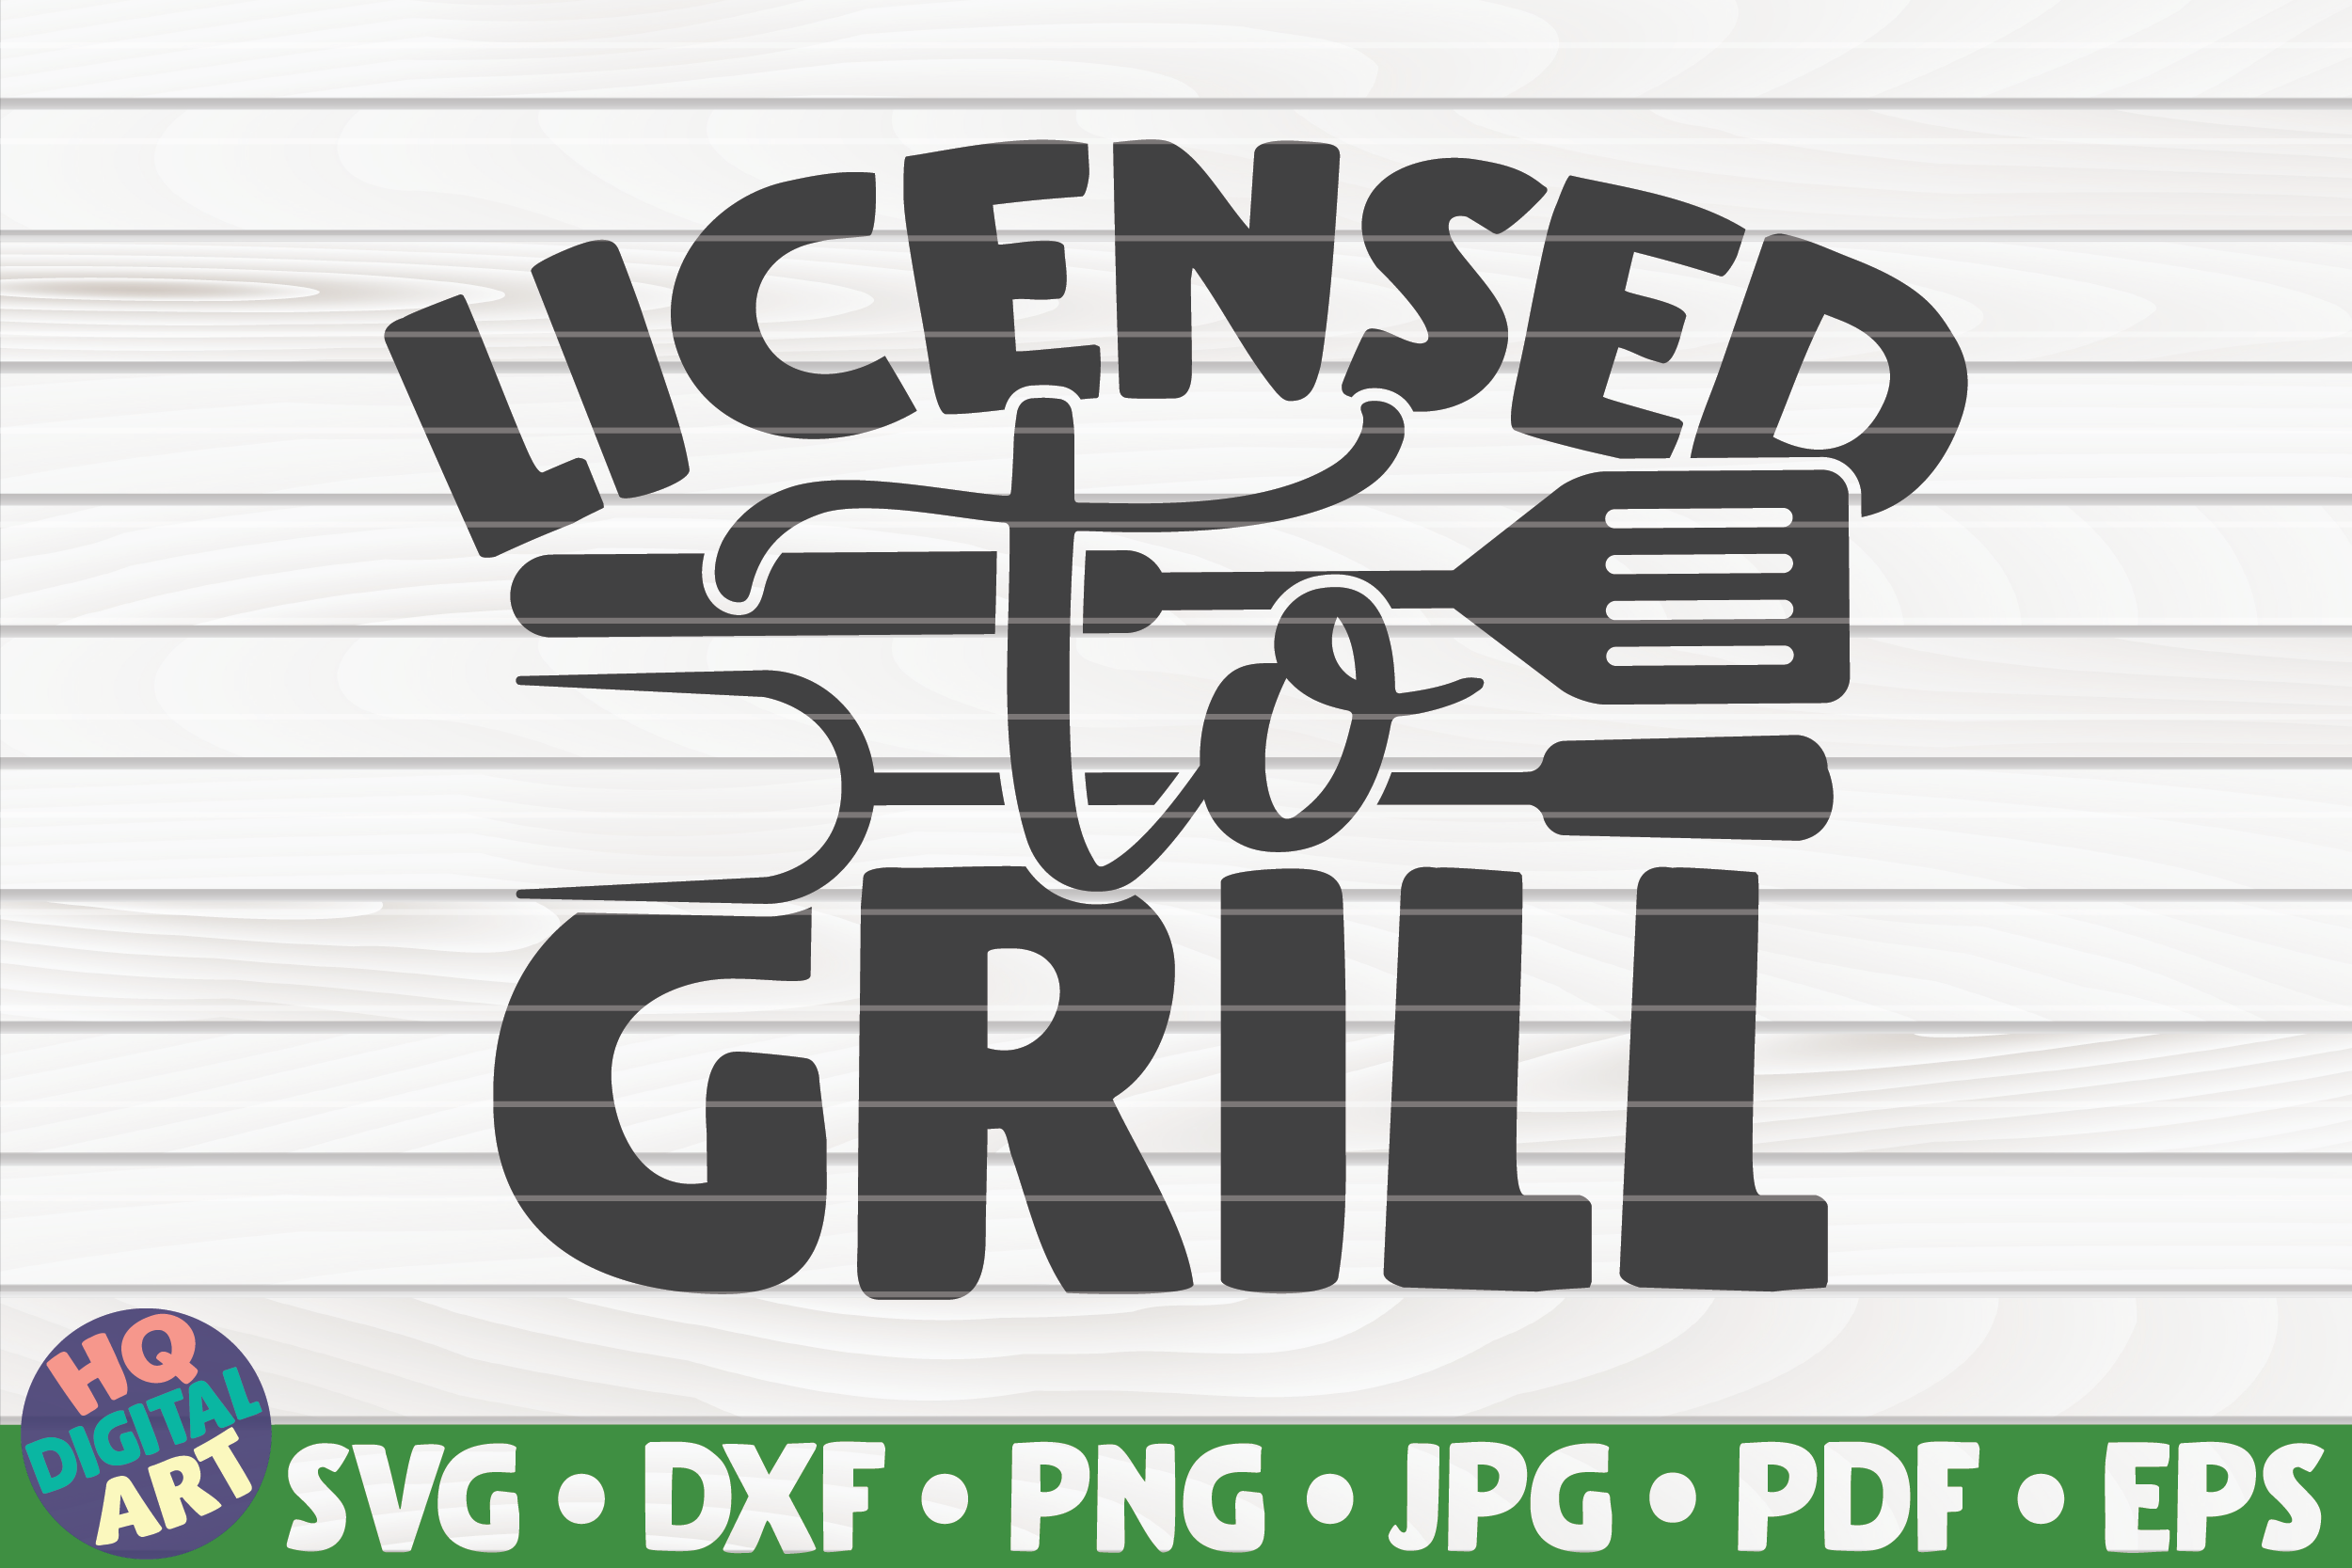 Download Free Licensed To Grill Barbecue Quote Graphic By Mihaibadea95 for Cricut Explore, Silhouette and other cutting machines.